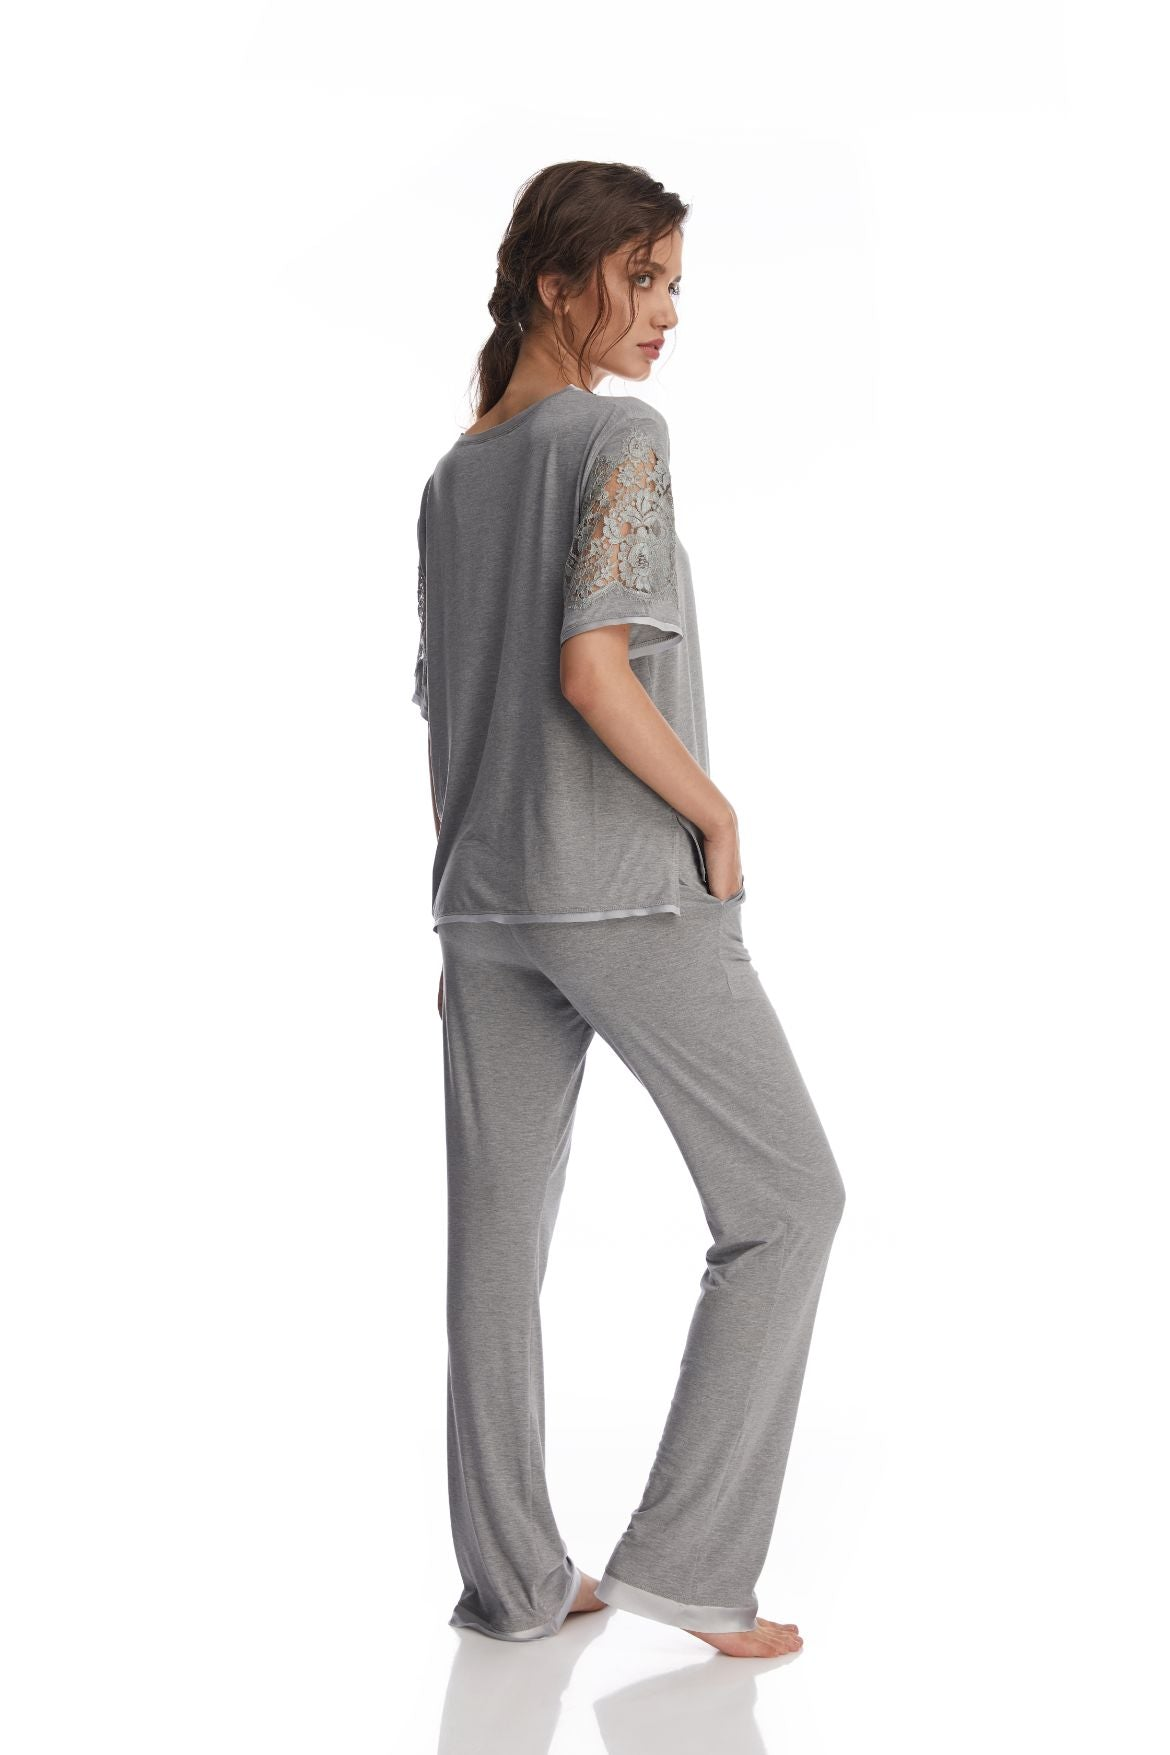 Heavenly Freshness Pants in Glacier Grey